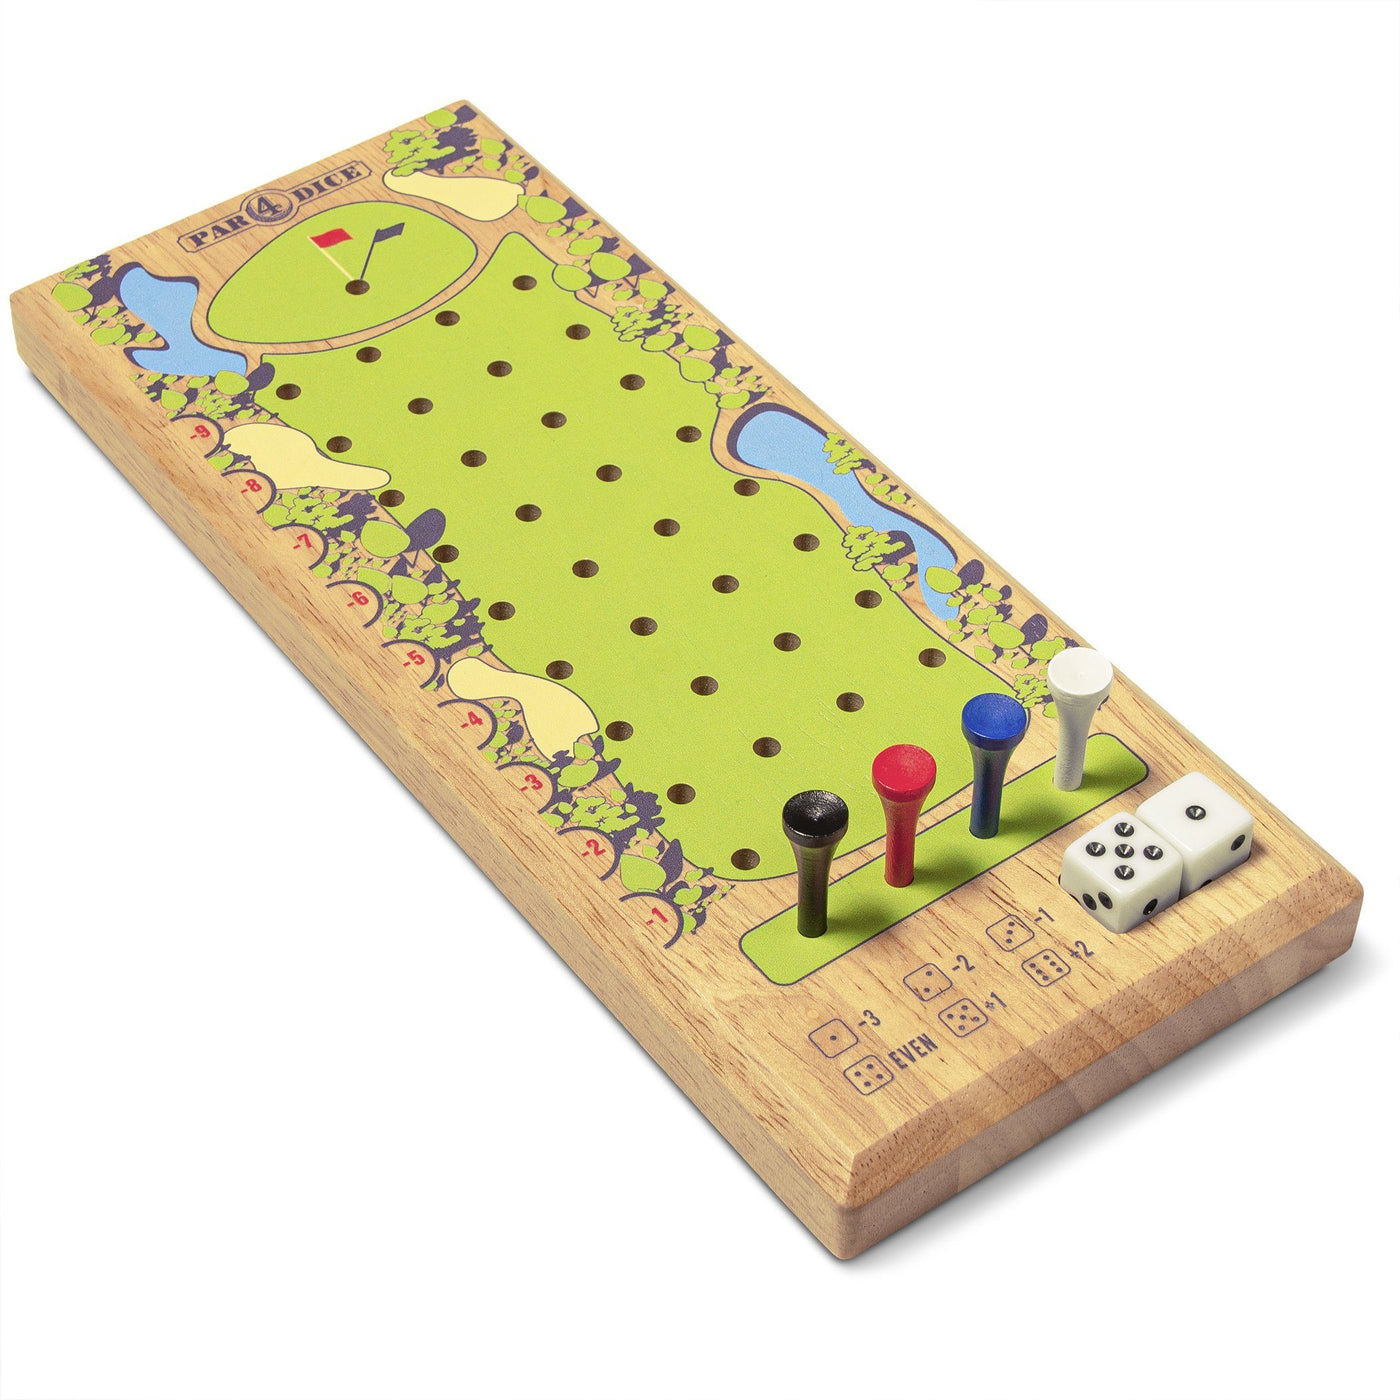 Gosports Par 4 Dice Golf Tabletop Game Quick Fun Games For All Ages Playgosports Com